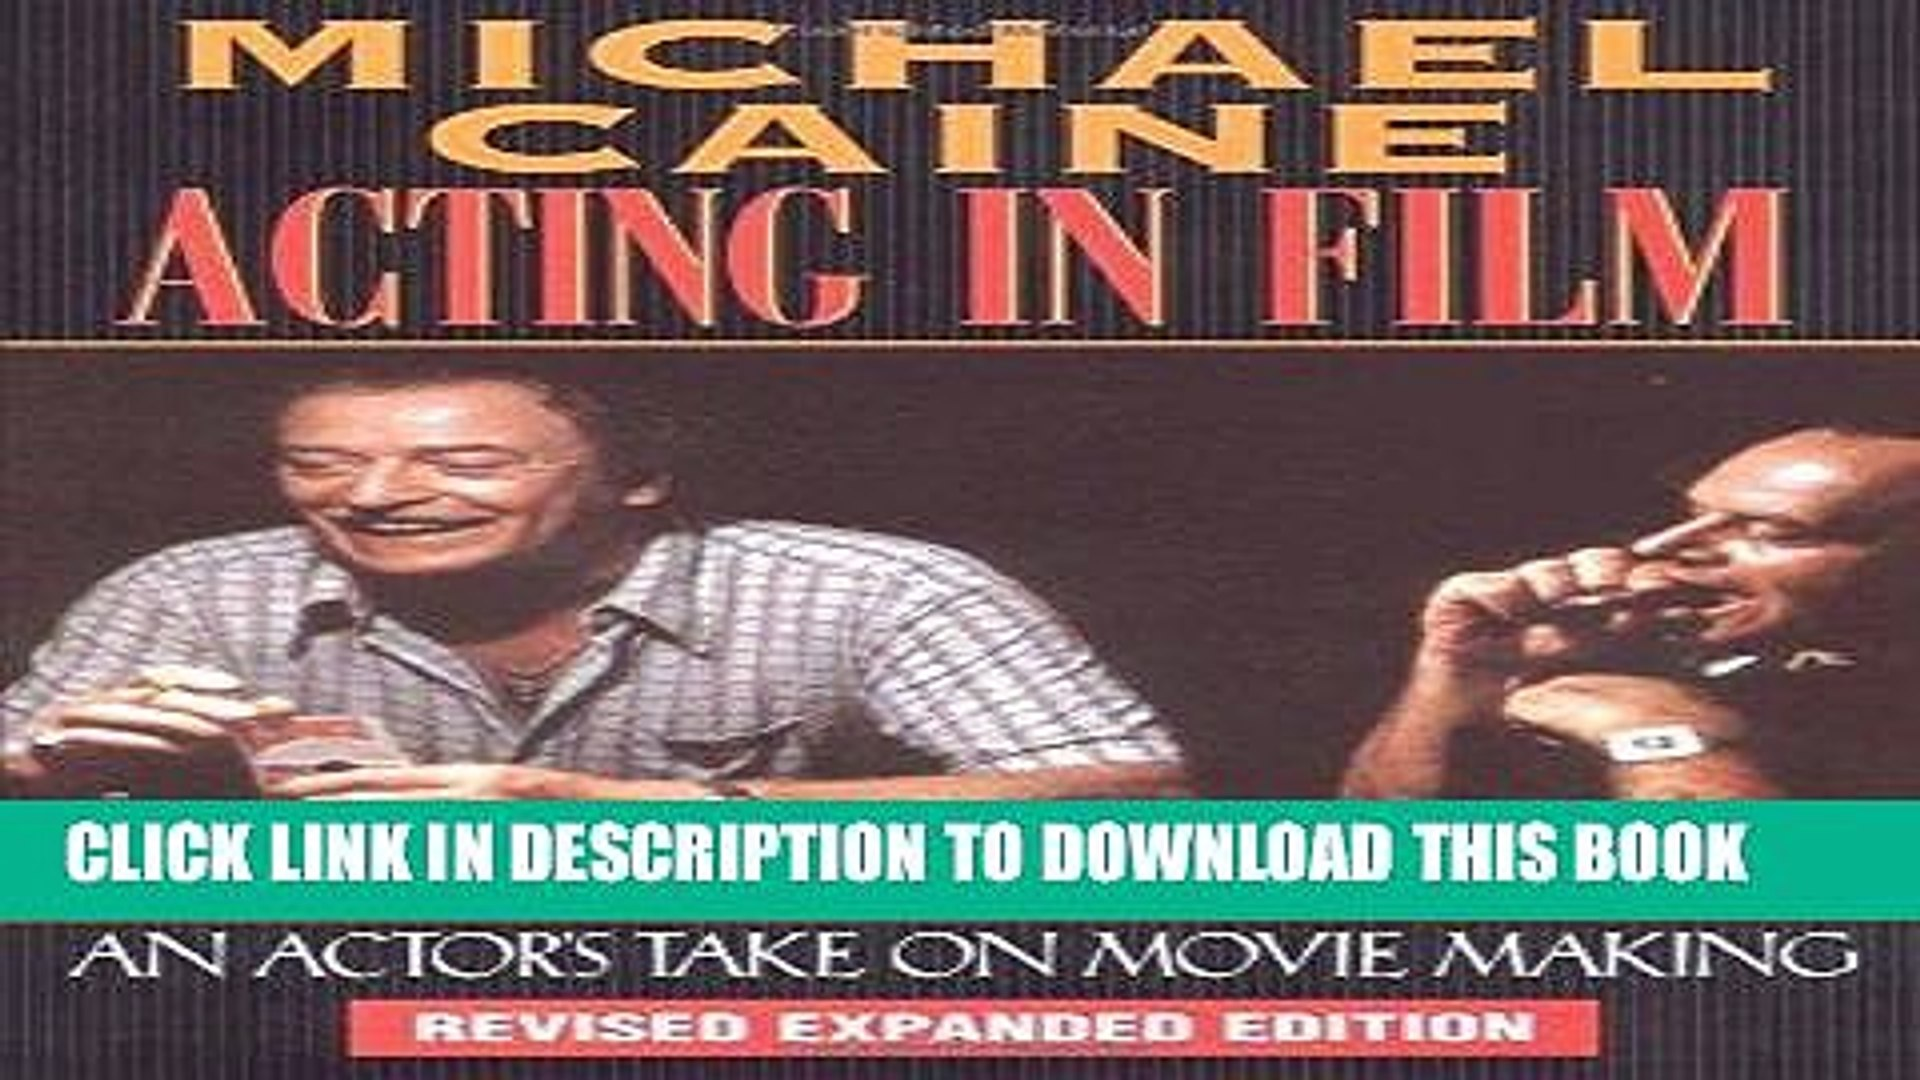 Ebook Michael Caine - Acting in Film: An Actor s Take on Movie Making (The Applause Acting Series)